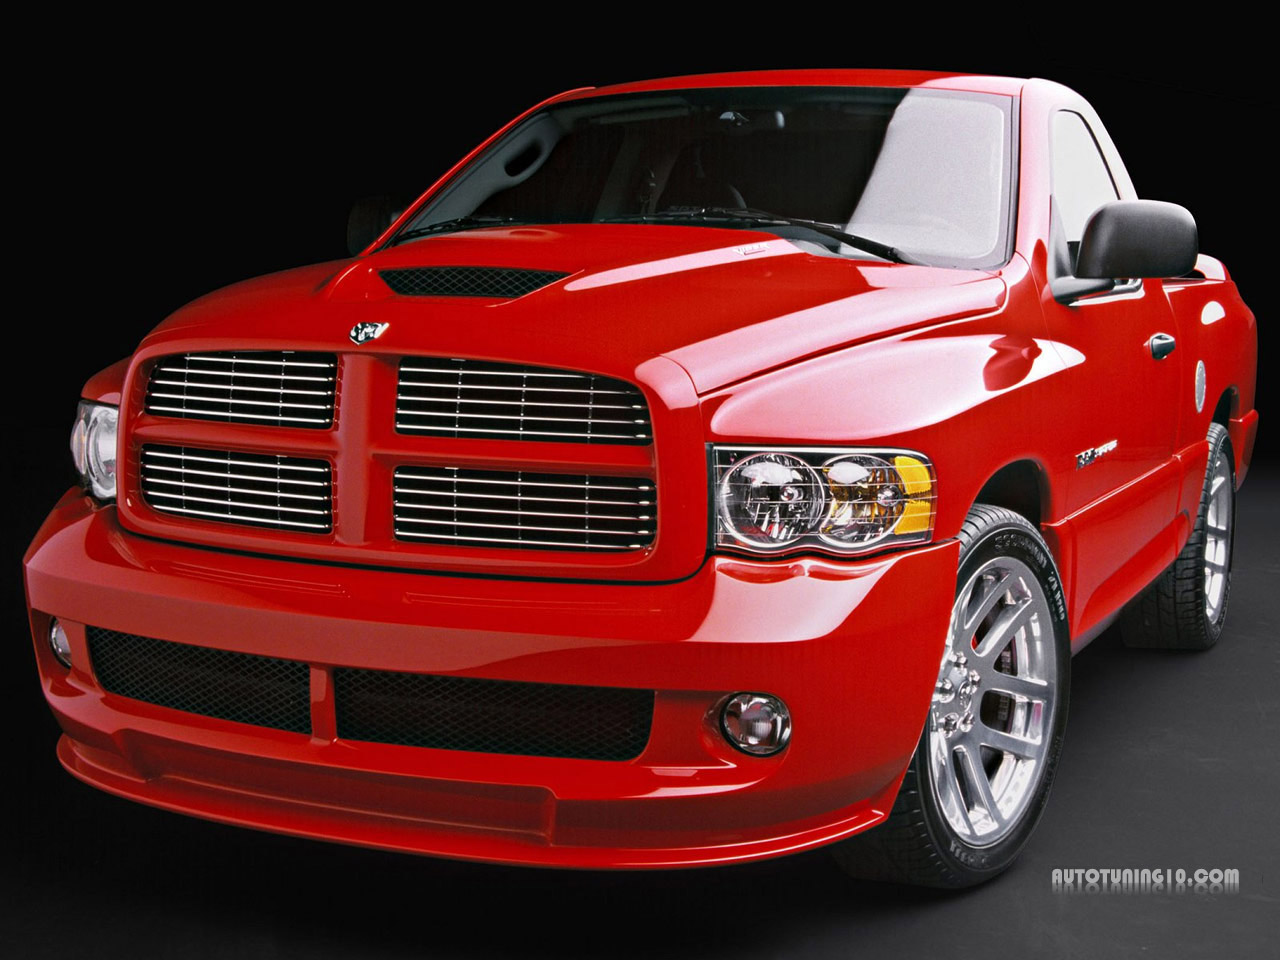 Dodge Ram Wallpaper 4530 Hd Wallpapers in Cars   Imagescicom 1280x960